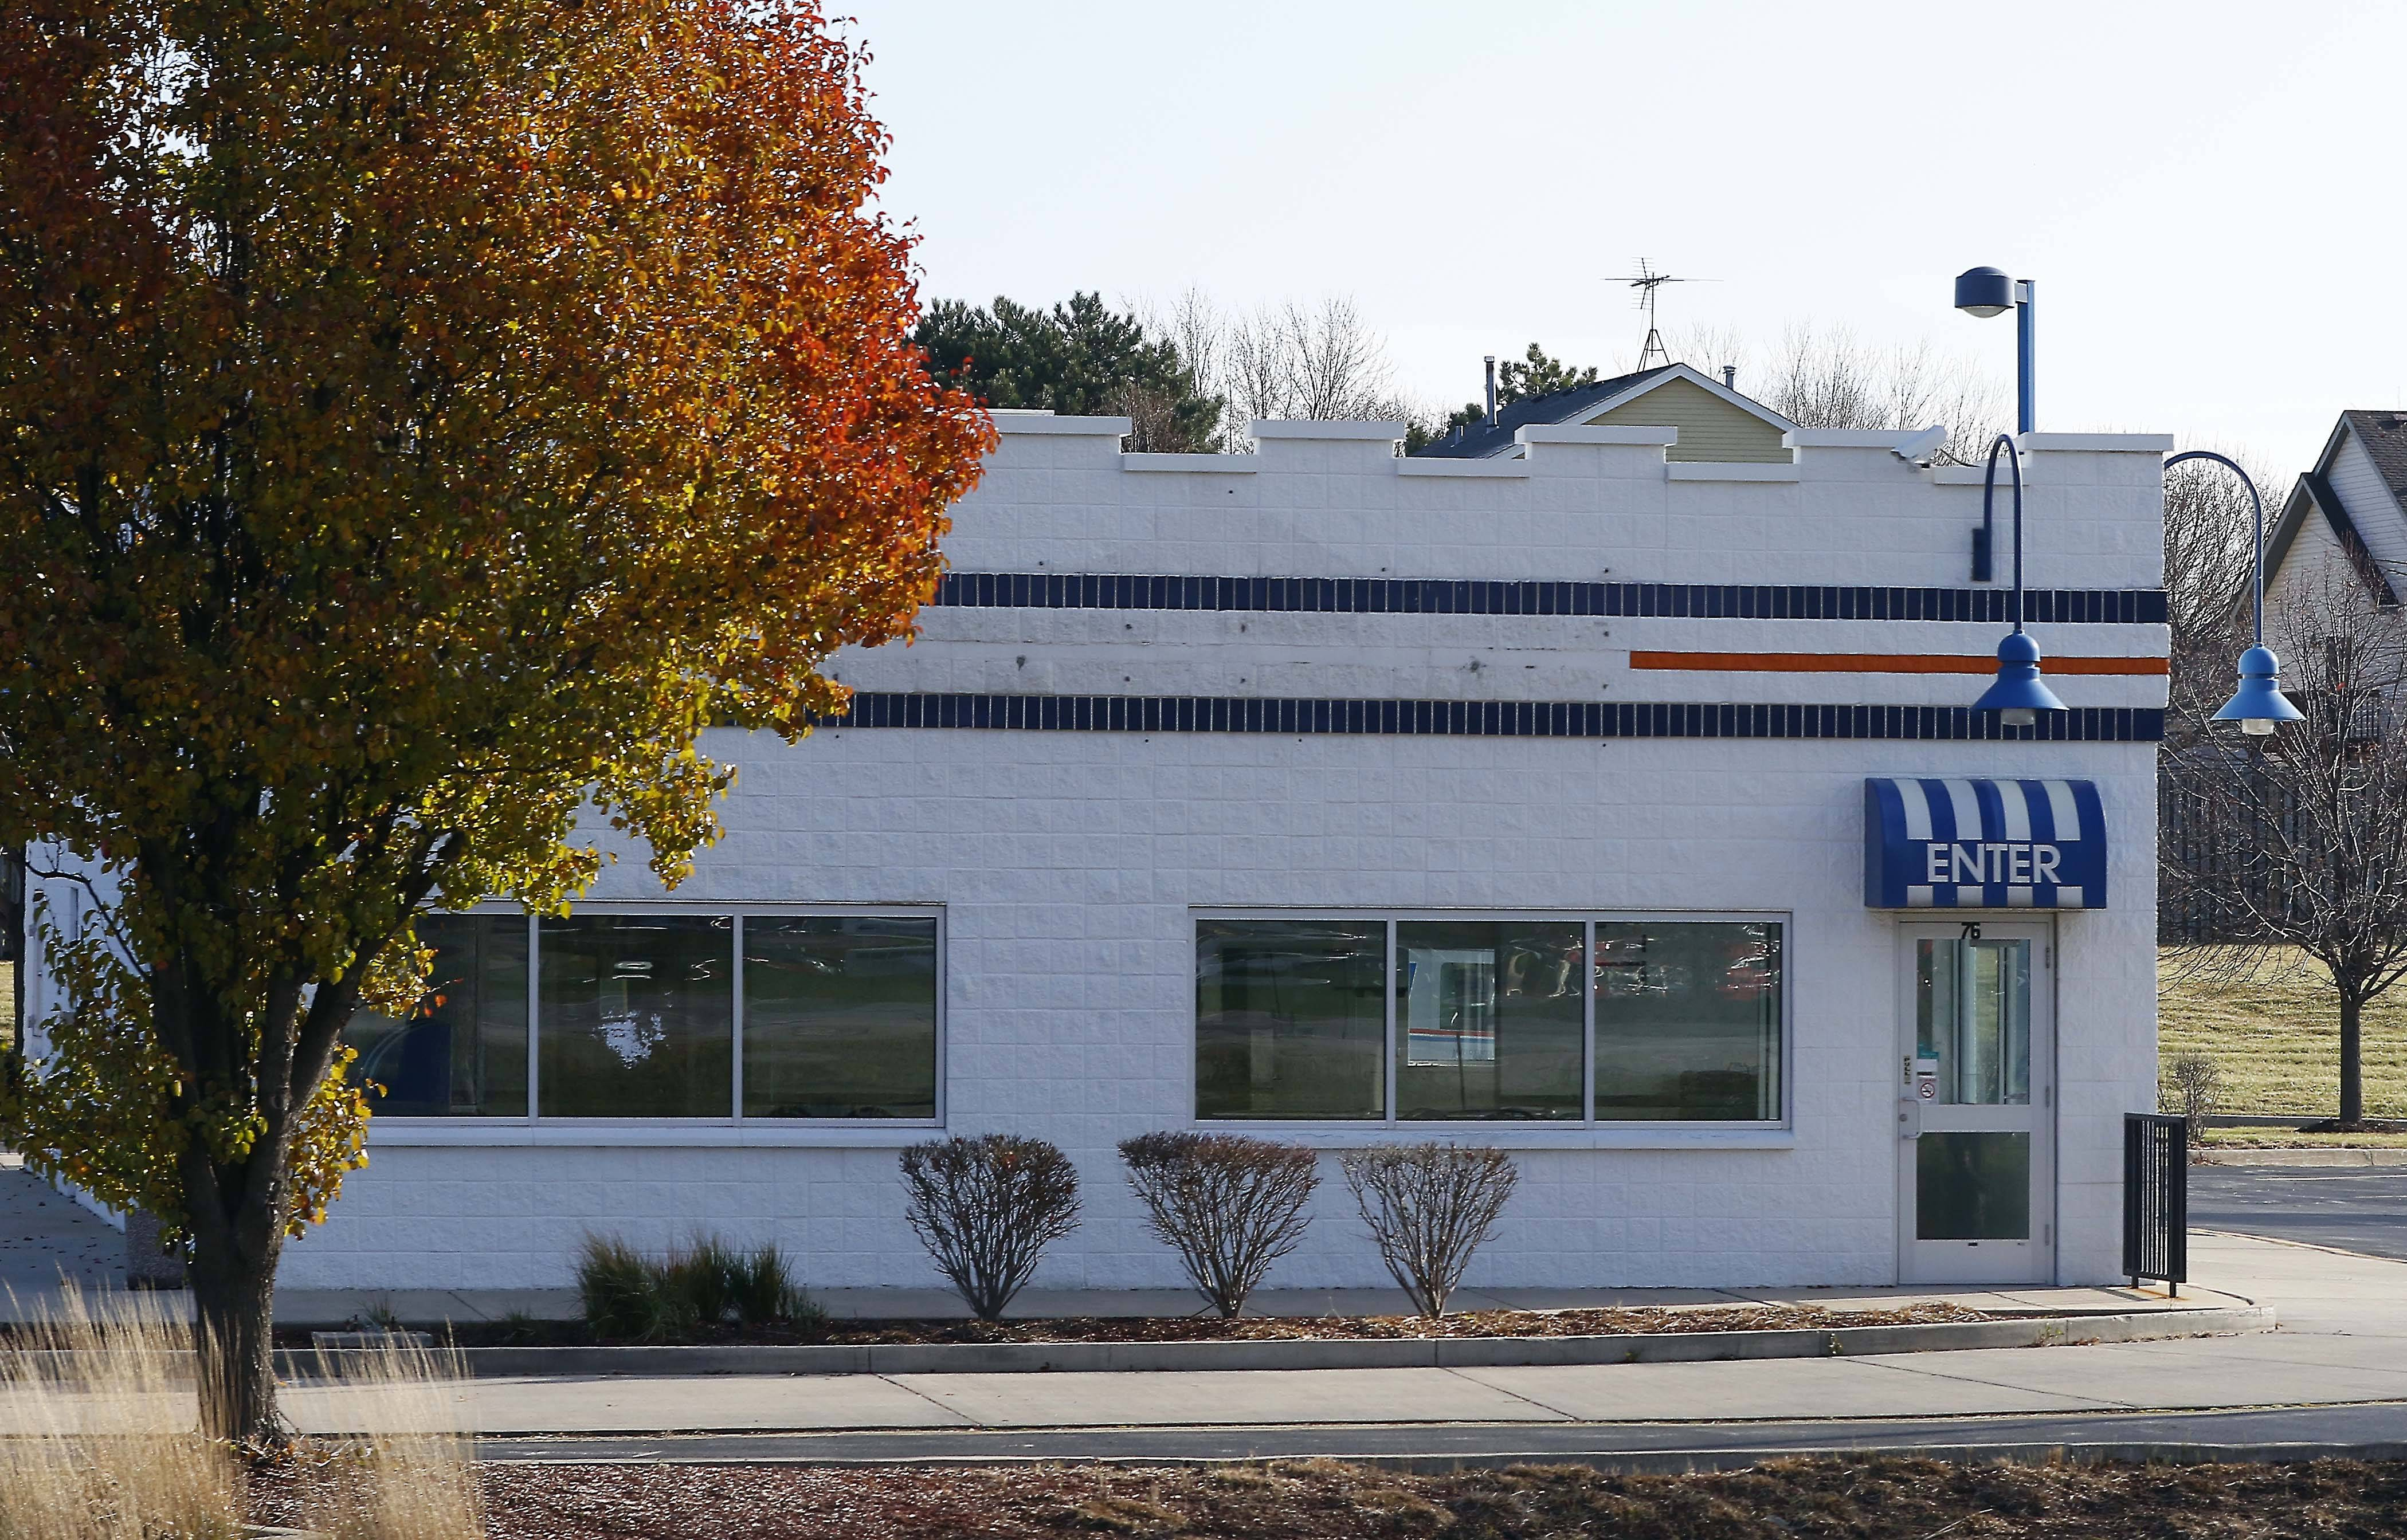 The empty White Castle building in Batavia could soon be the home of a Burrito Parrilla Mexicana. The plan Commission will take up the proposal today.